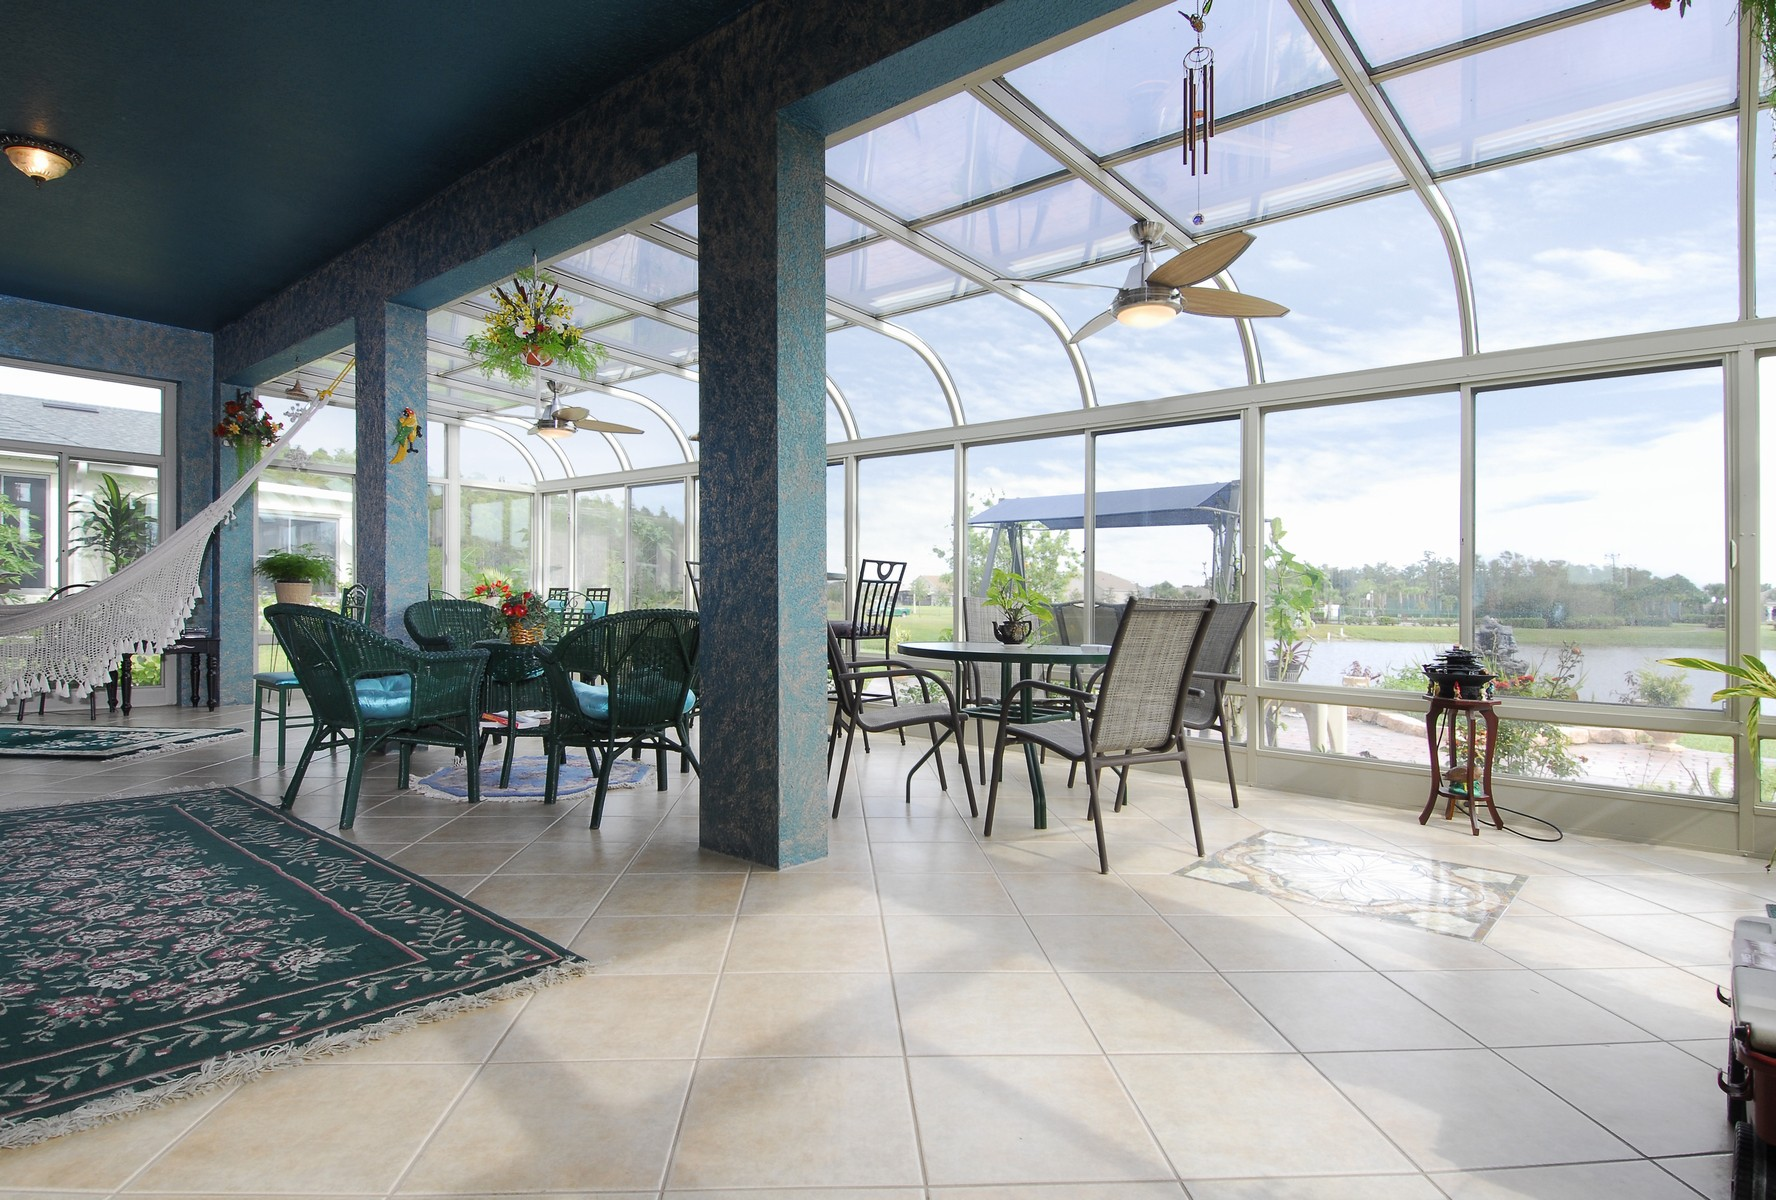 Curved Glass Roof Sunroom Or Patio Room With Aluminum Frame